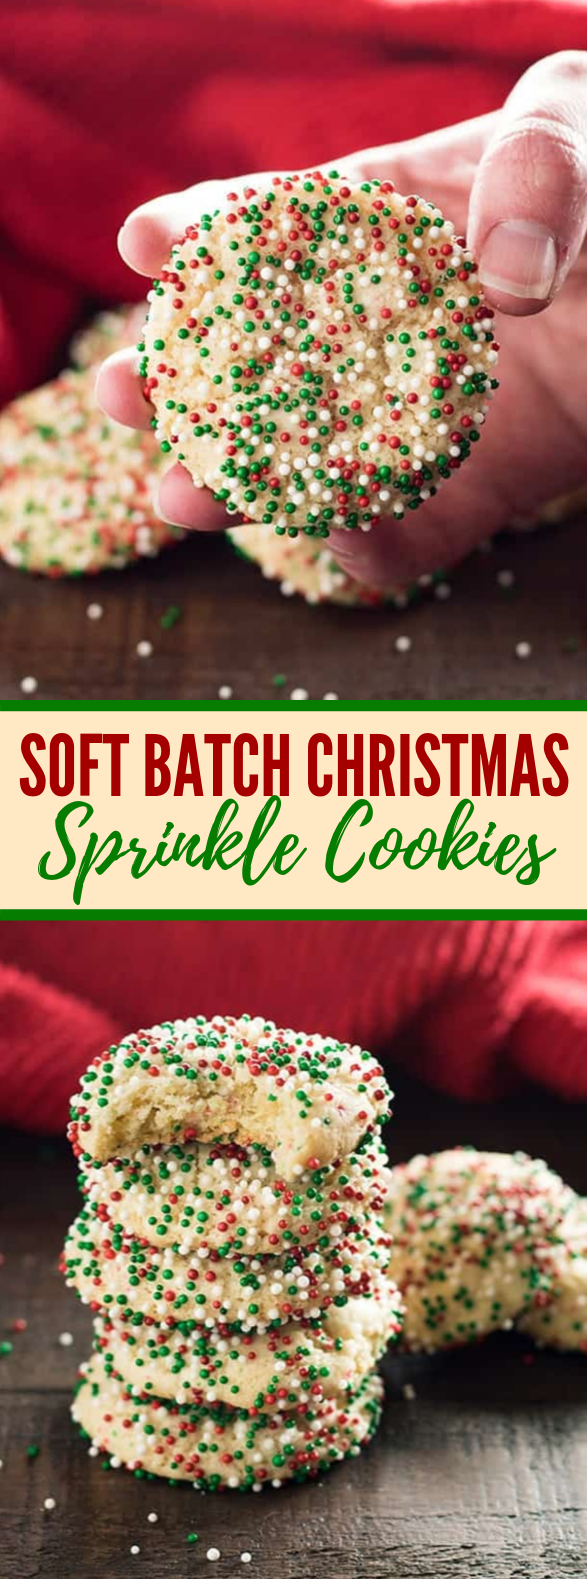 SOFT BATCH CHRISTMAS SPRINKLE COOKIES #desserts #recipes